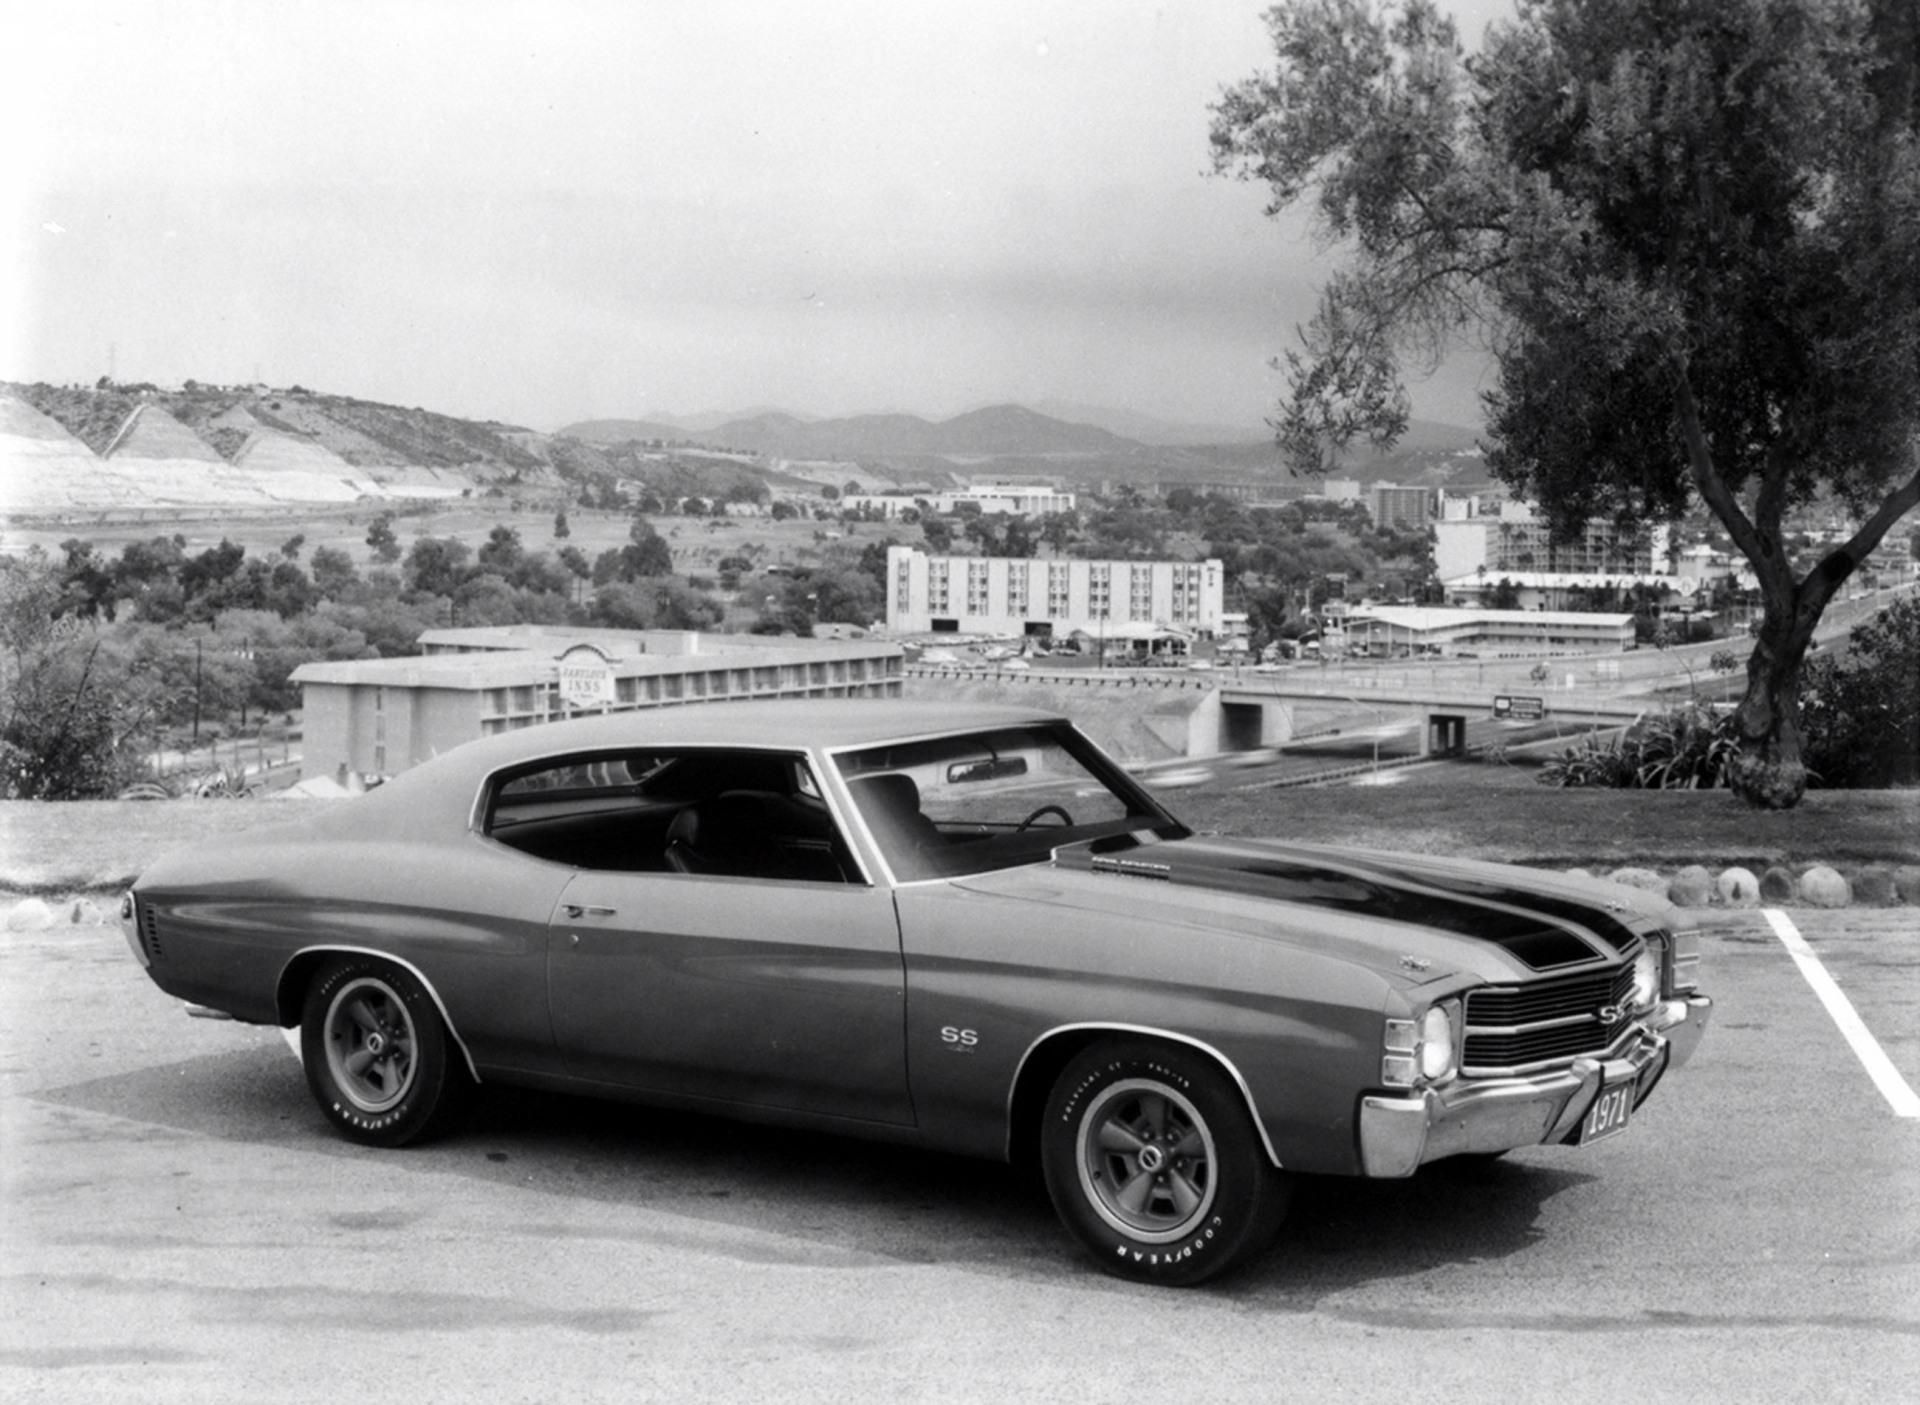 Chevelle my belle: Restore an old Muscle Car | Nice cars | Pinterest ...